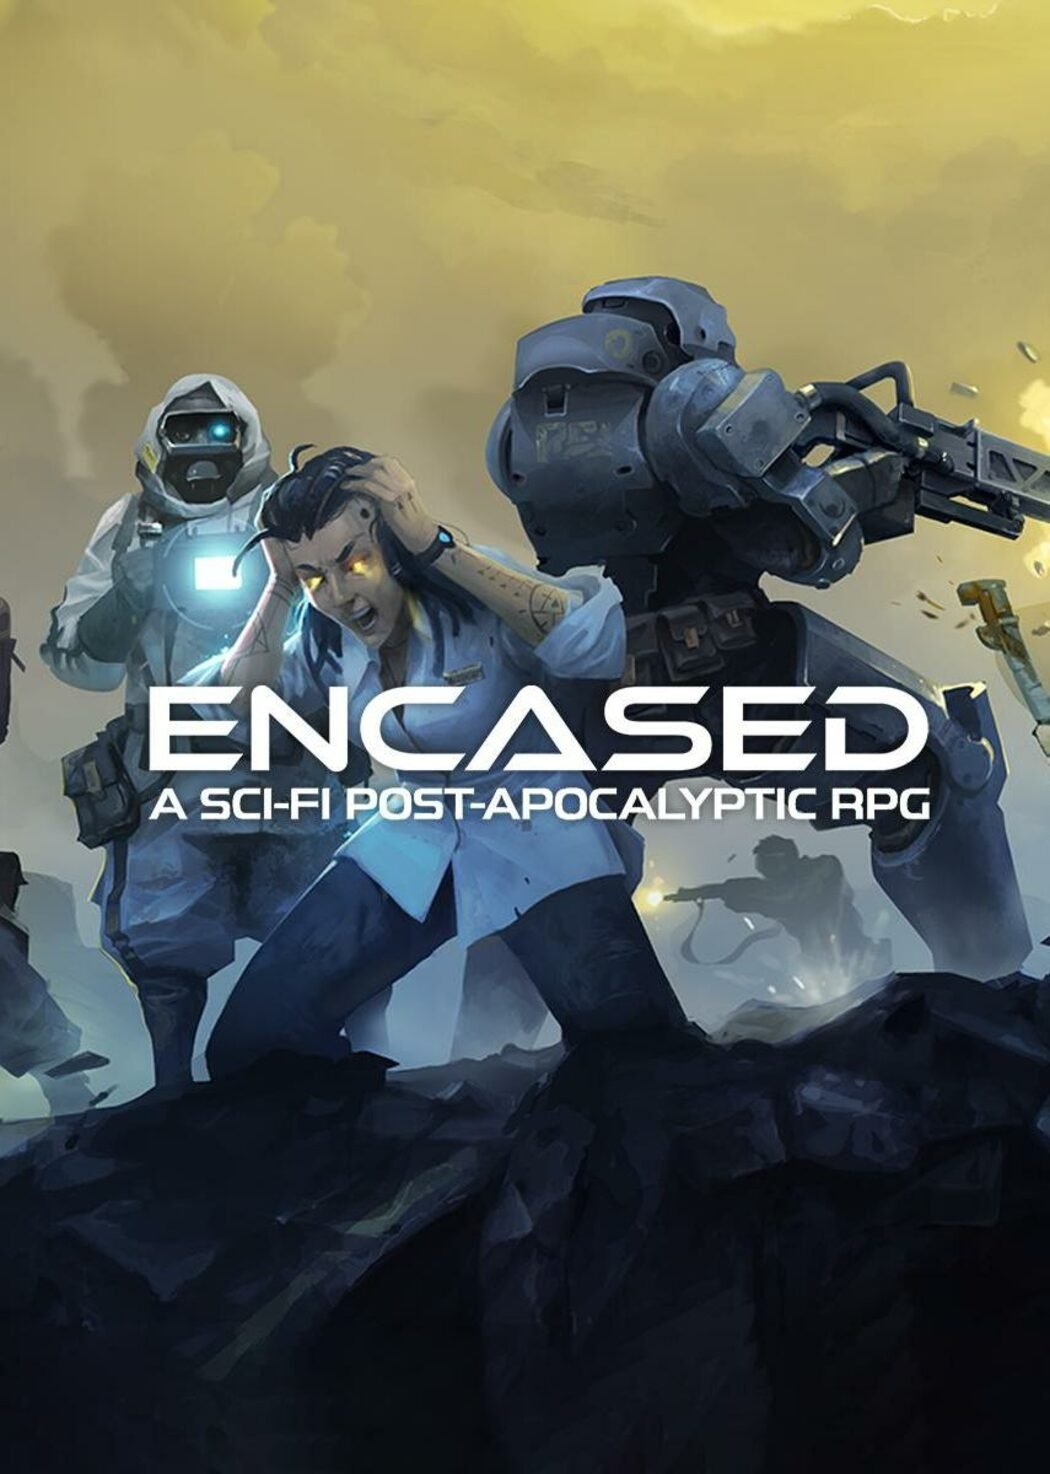 Encased: A Sci-Fi Post-Apocalyptic RPG [0.18.911.1651 (41270) | Early Access ] (2019) (2019)